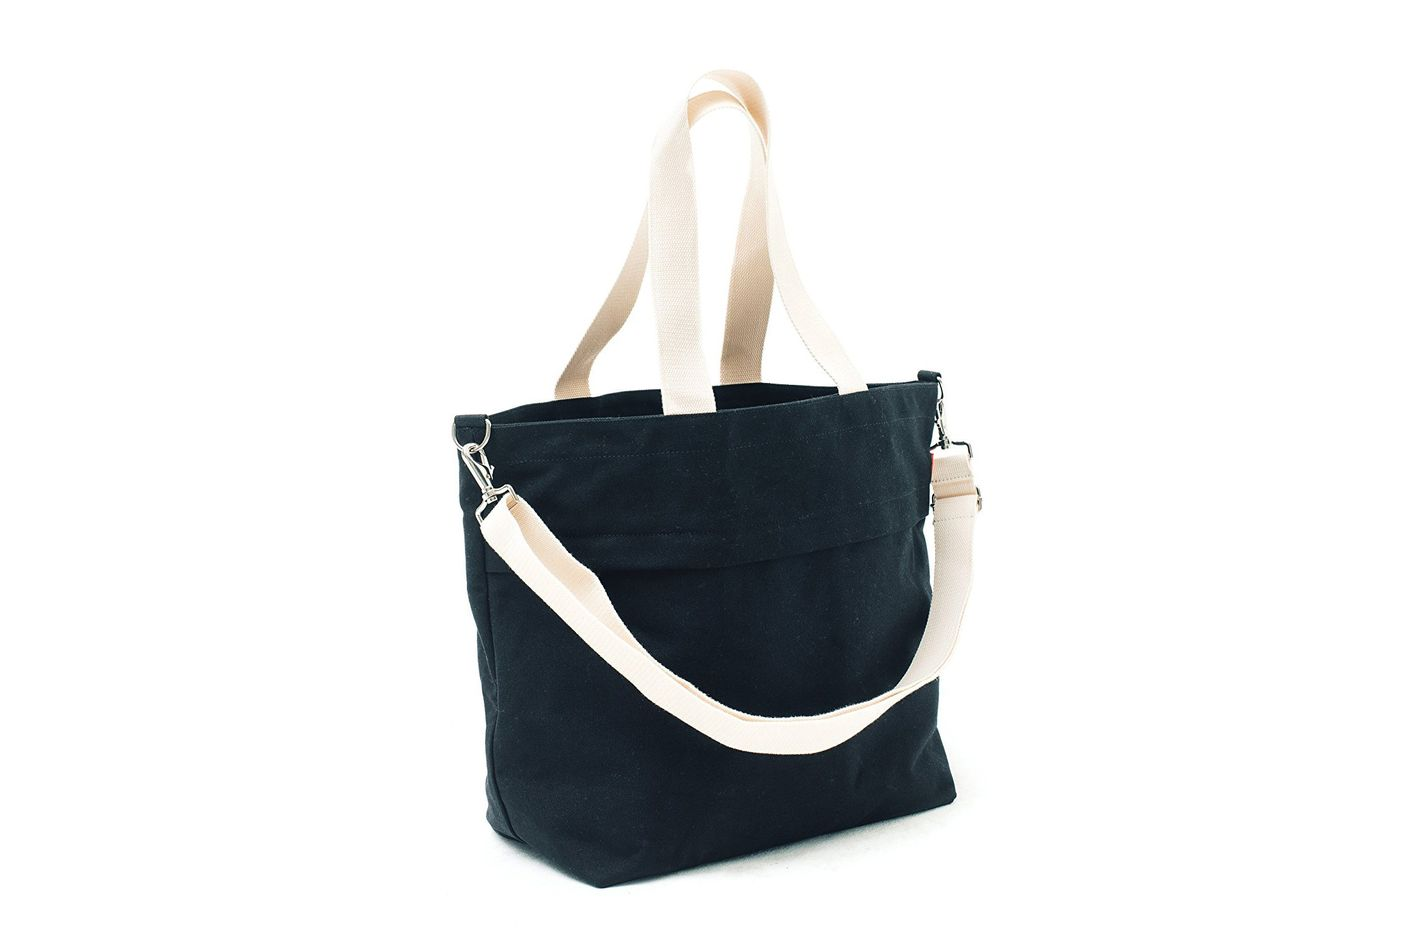 Abbot Fjord Canvas Market Large Travel Bag With Outer Zipper Pocket